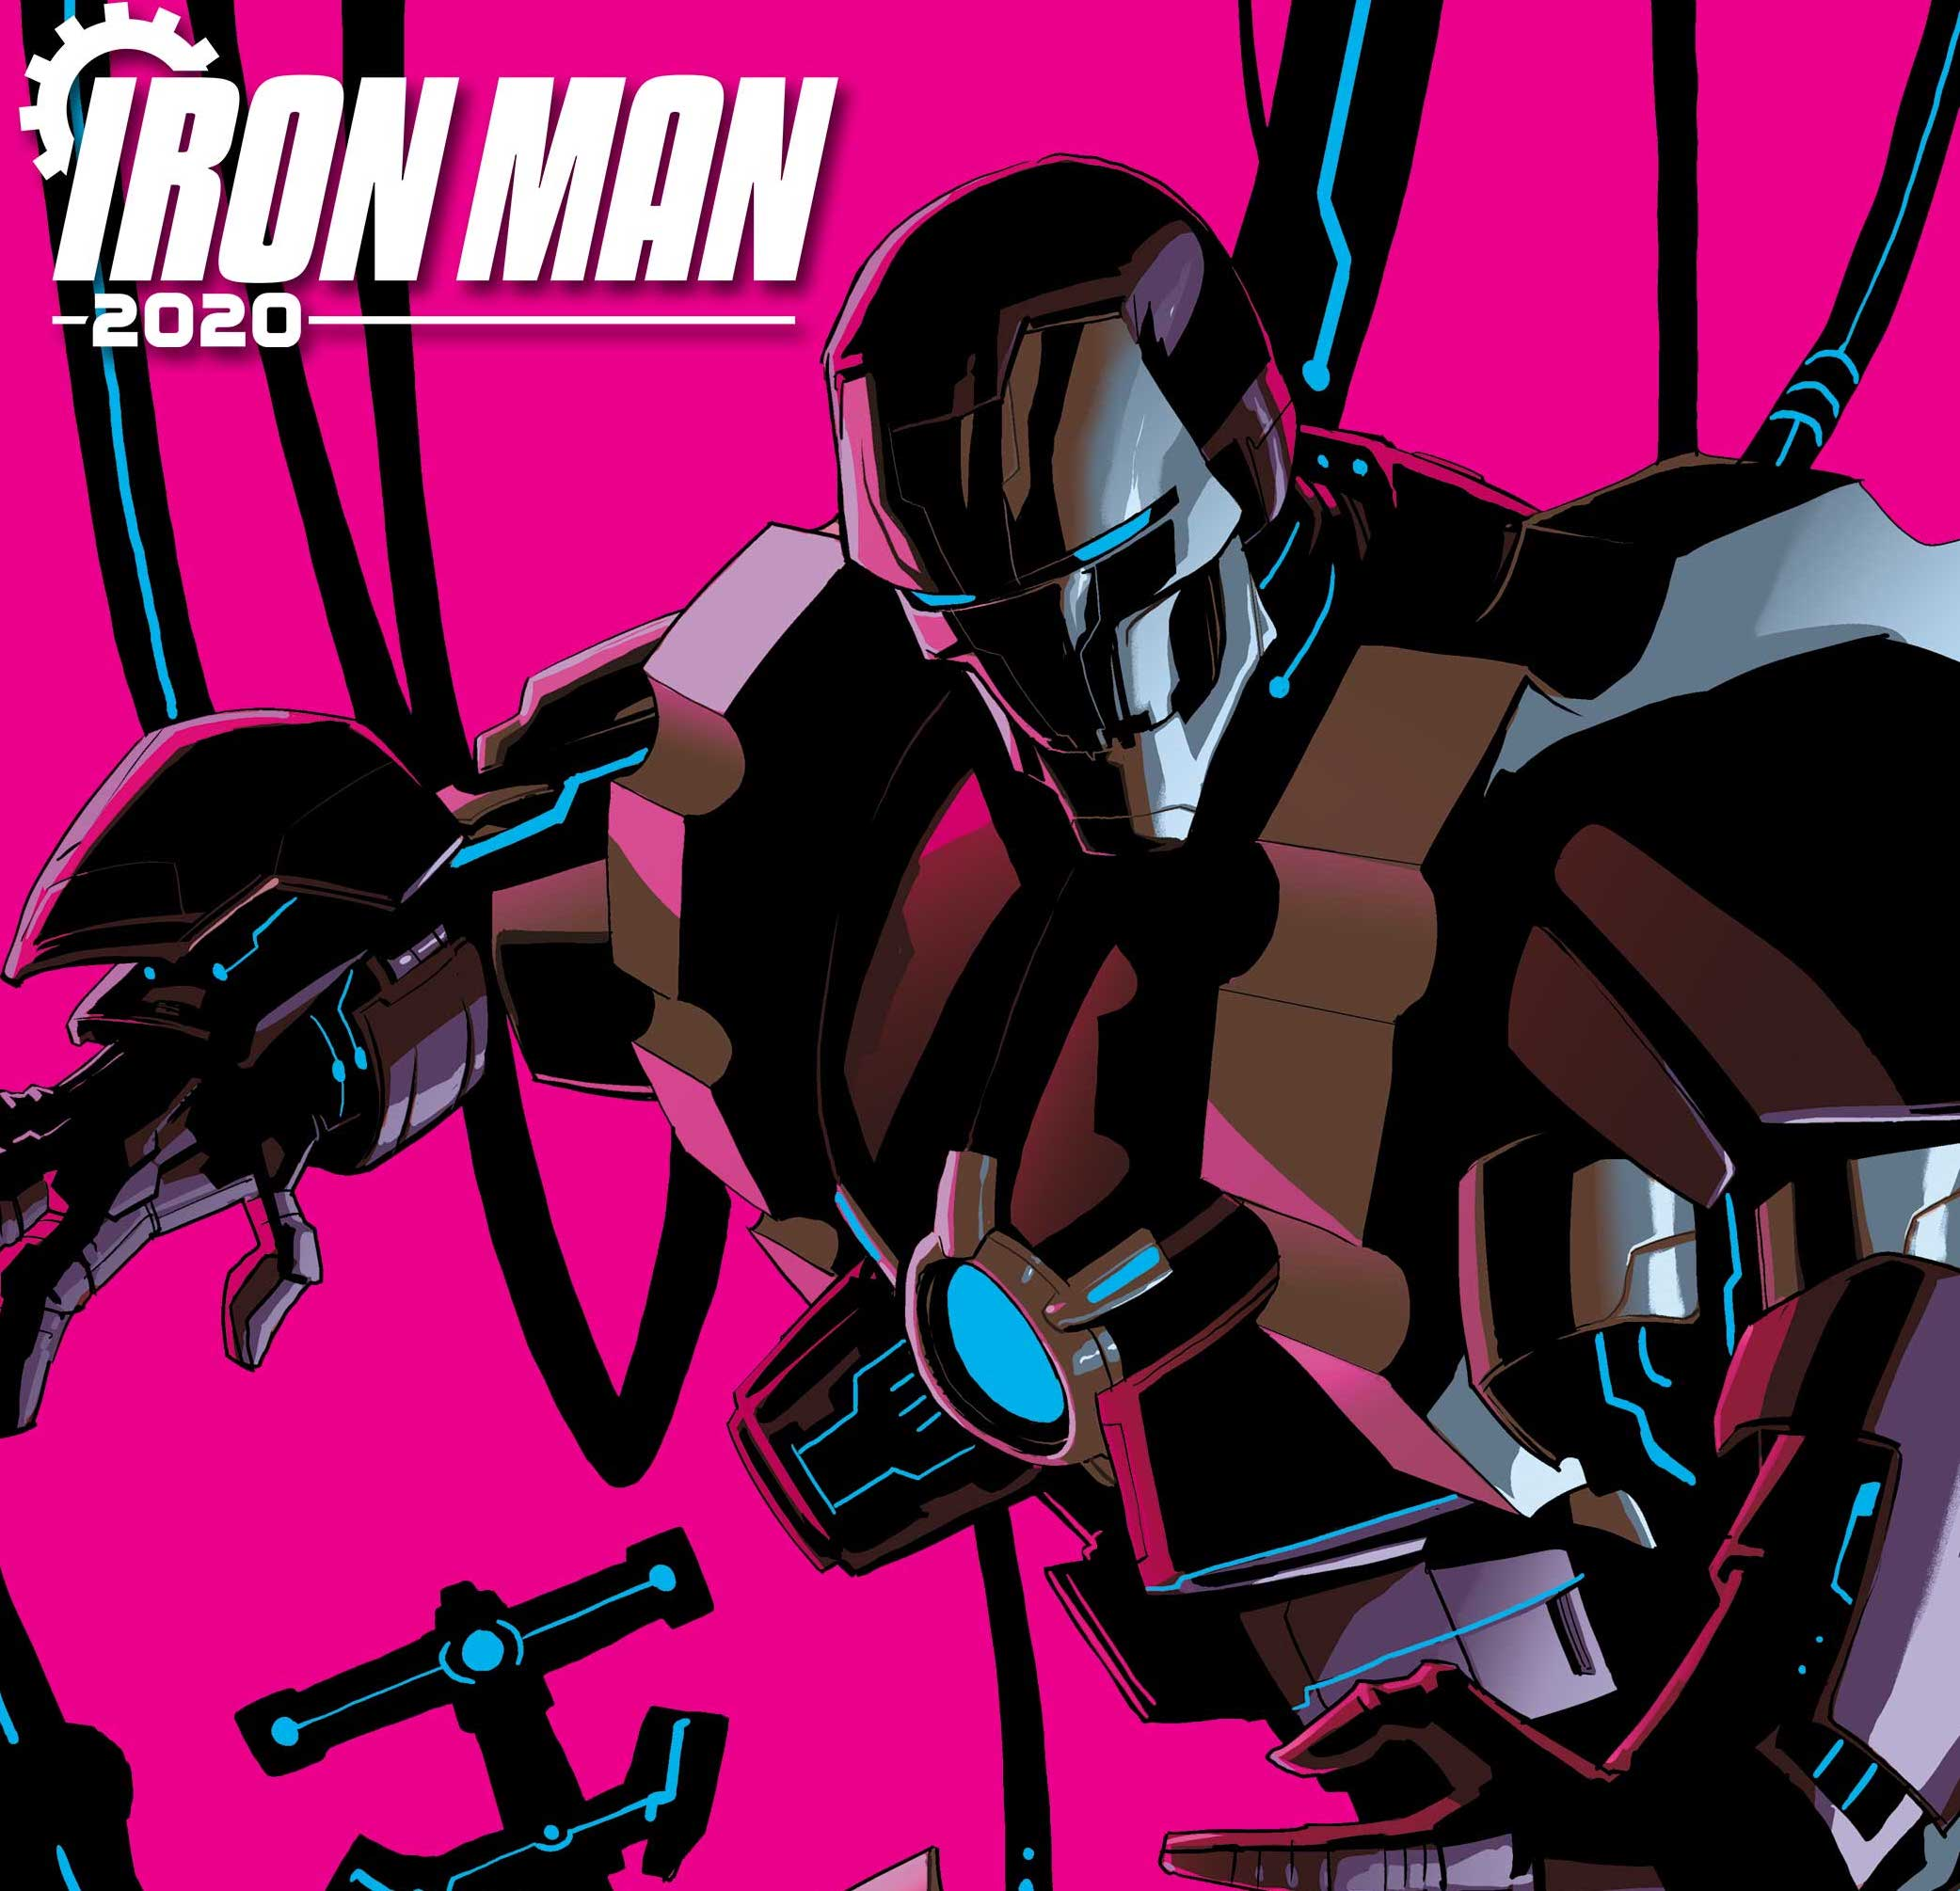 NYCC '19: Iron Man 2020 event drops January 2020 from Dan Slott, Christos Gage and Pete Woods